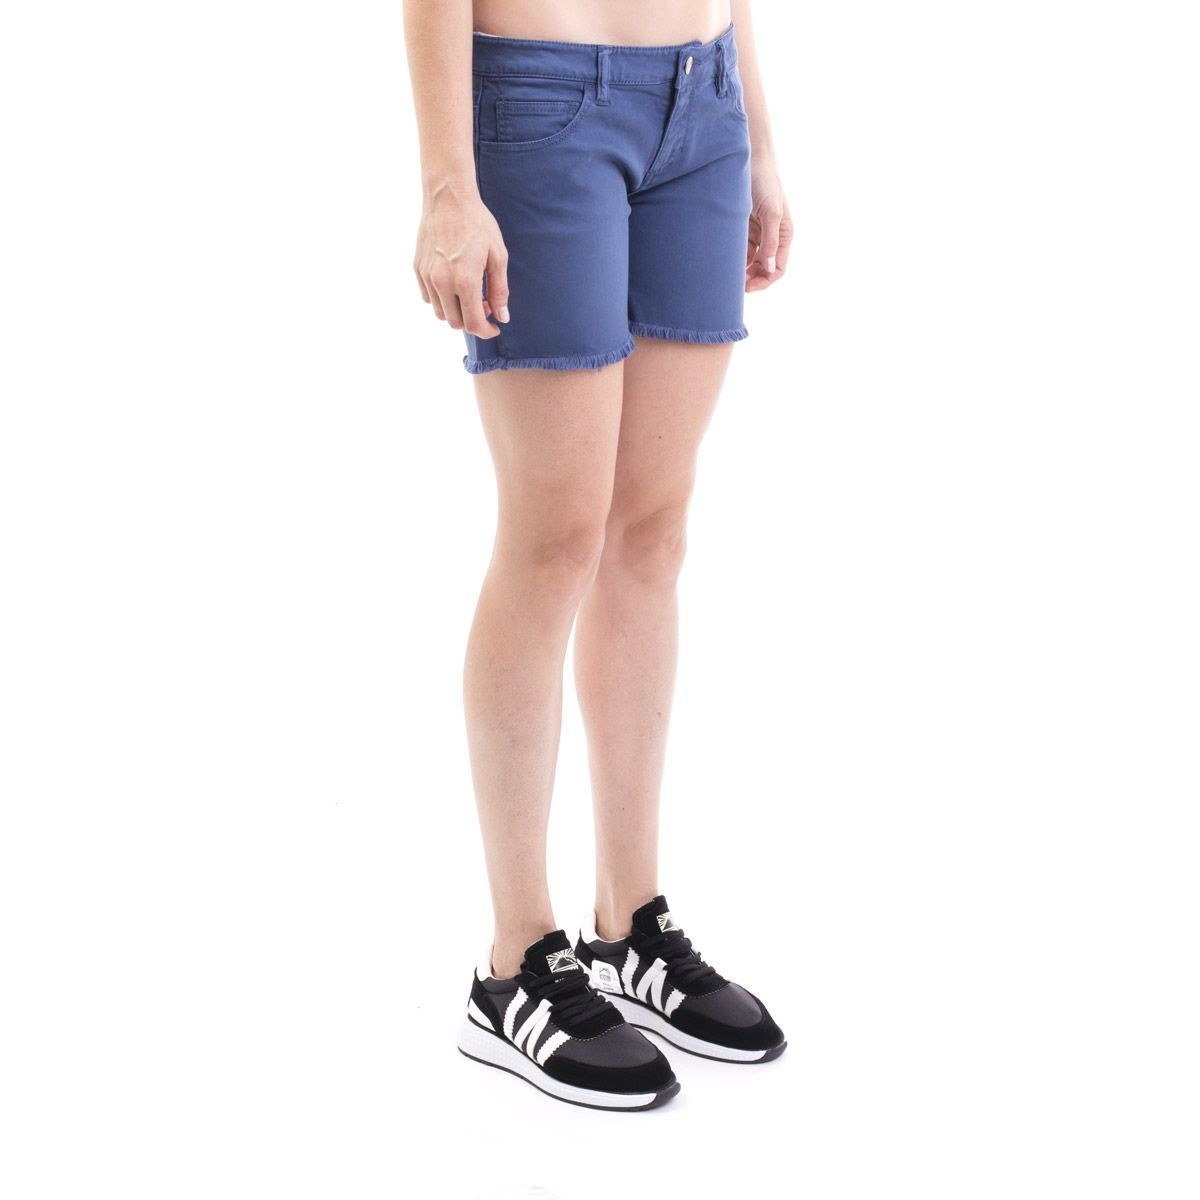 SUN 68 WOMEN'S D1920780 BLUE COTTON SHORTS